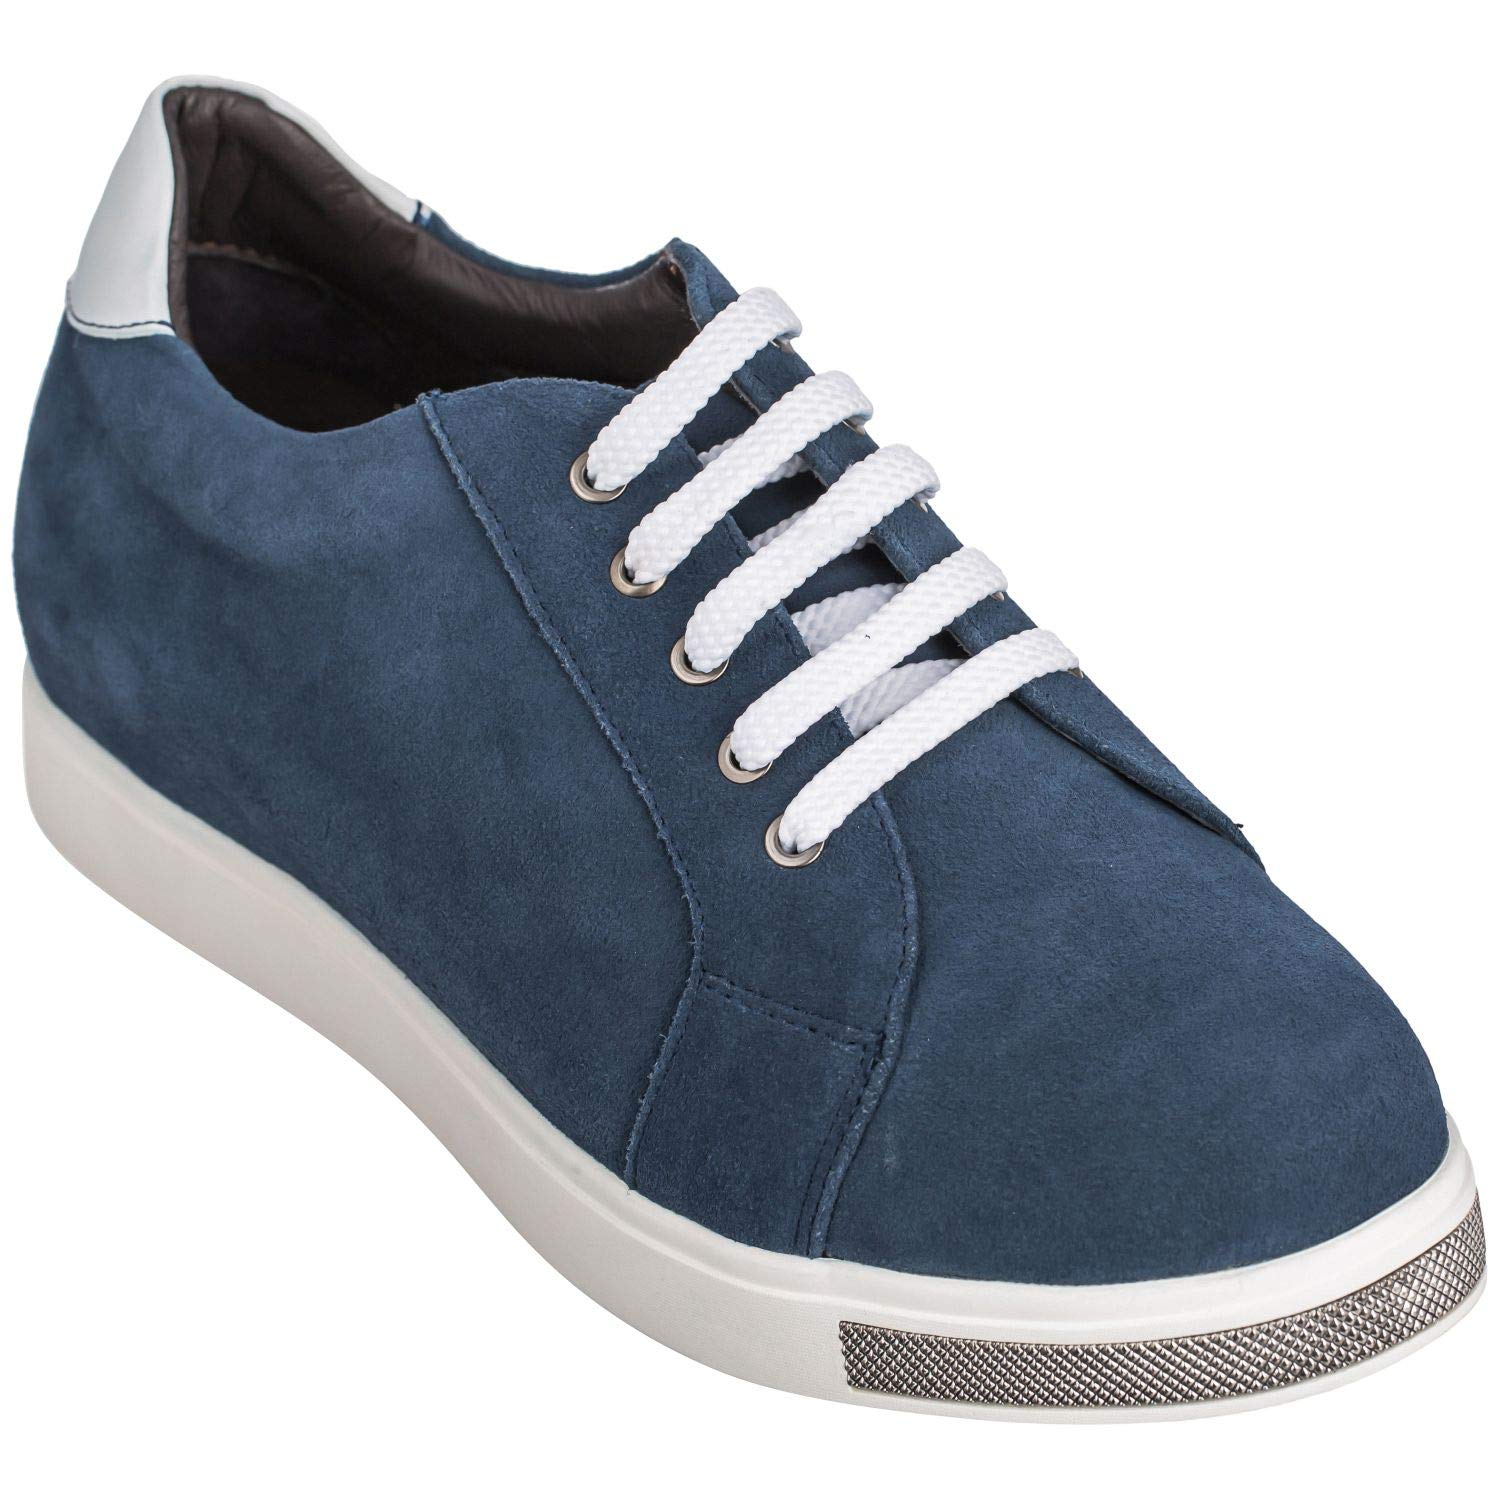 84e5934f46034 CALTO Men's Invisible Height Increasing Elevator Shoes - Blue Suede Lace-up  Casual Fashion Sneakers - 2.4 Inches Taller - Y26191